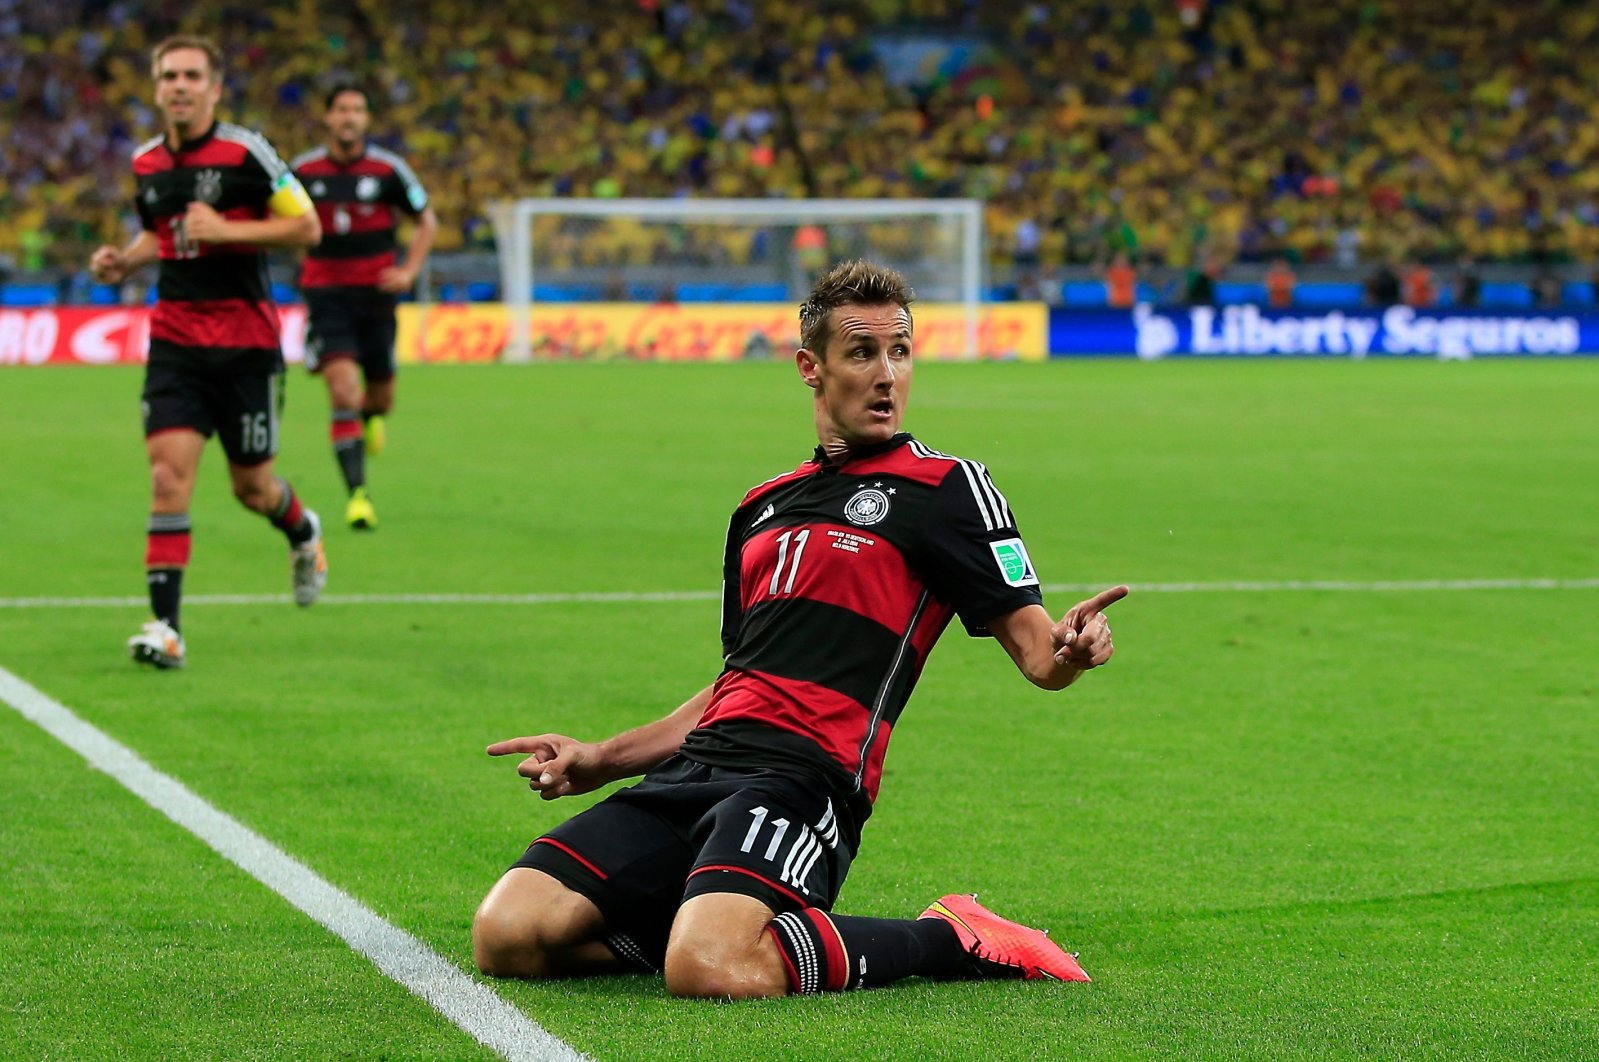 Miroslav Klose celebrates after scoring during the semi-final football match between Brazil and Germany, in Belo Horizonte, Brazil, July 8, 2014. (AFP Photo)